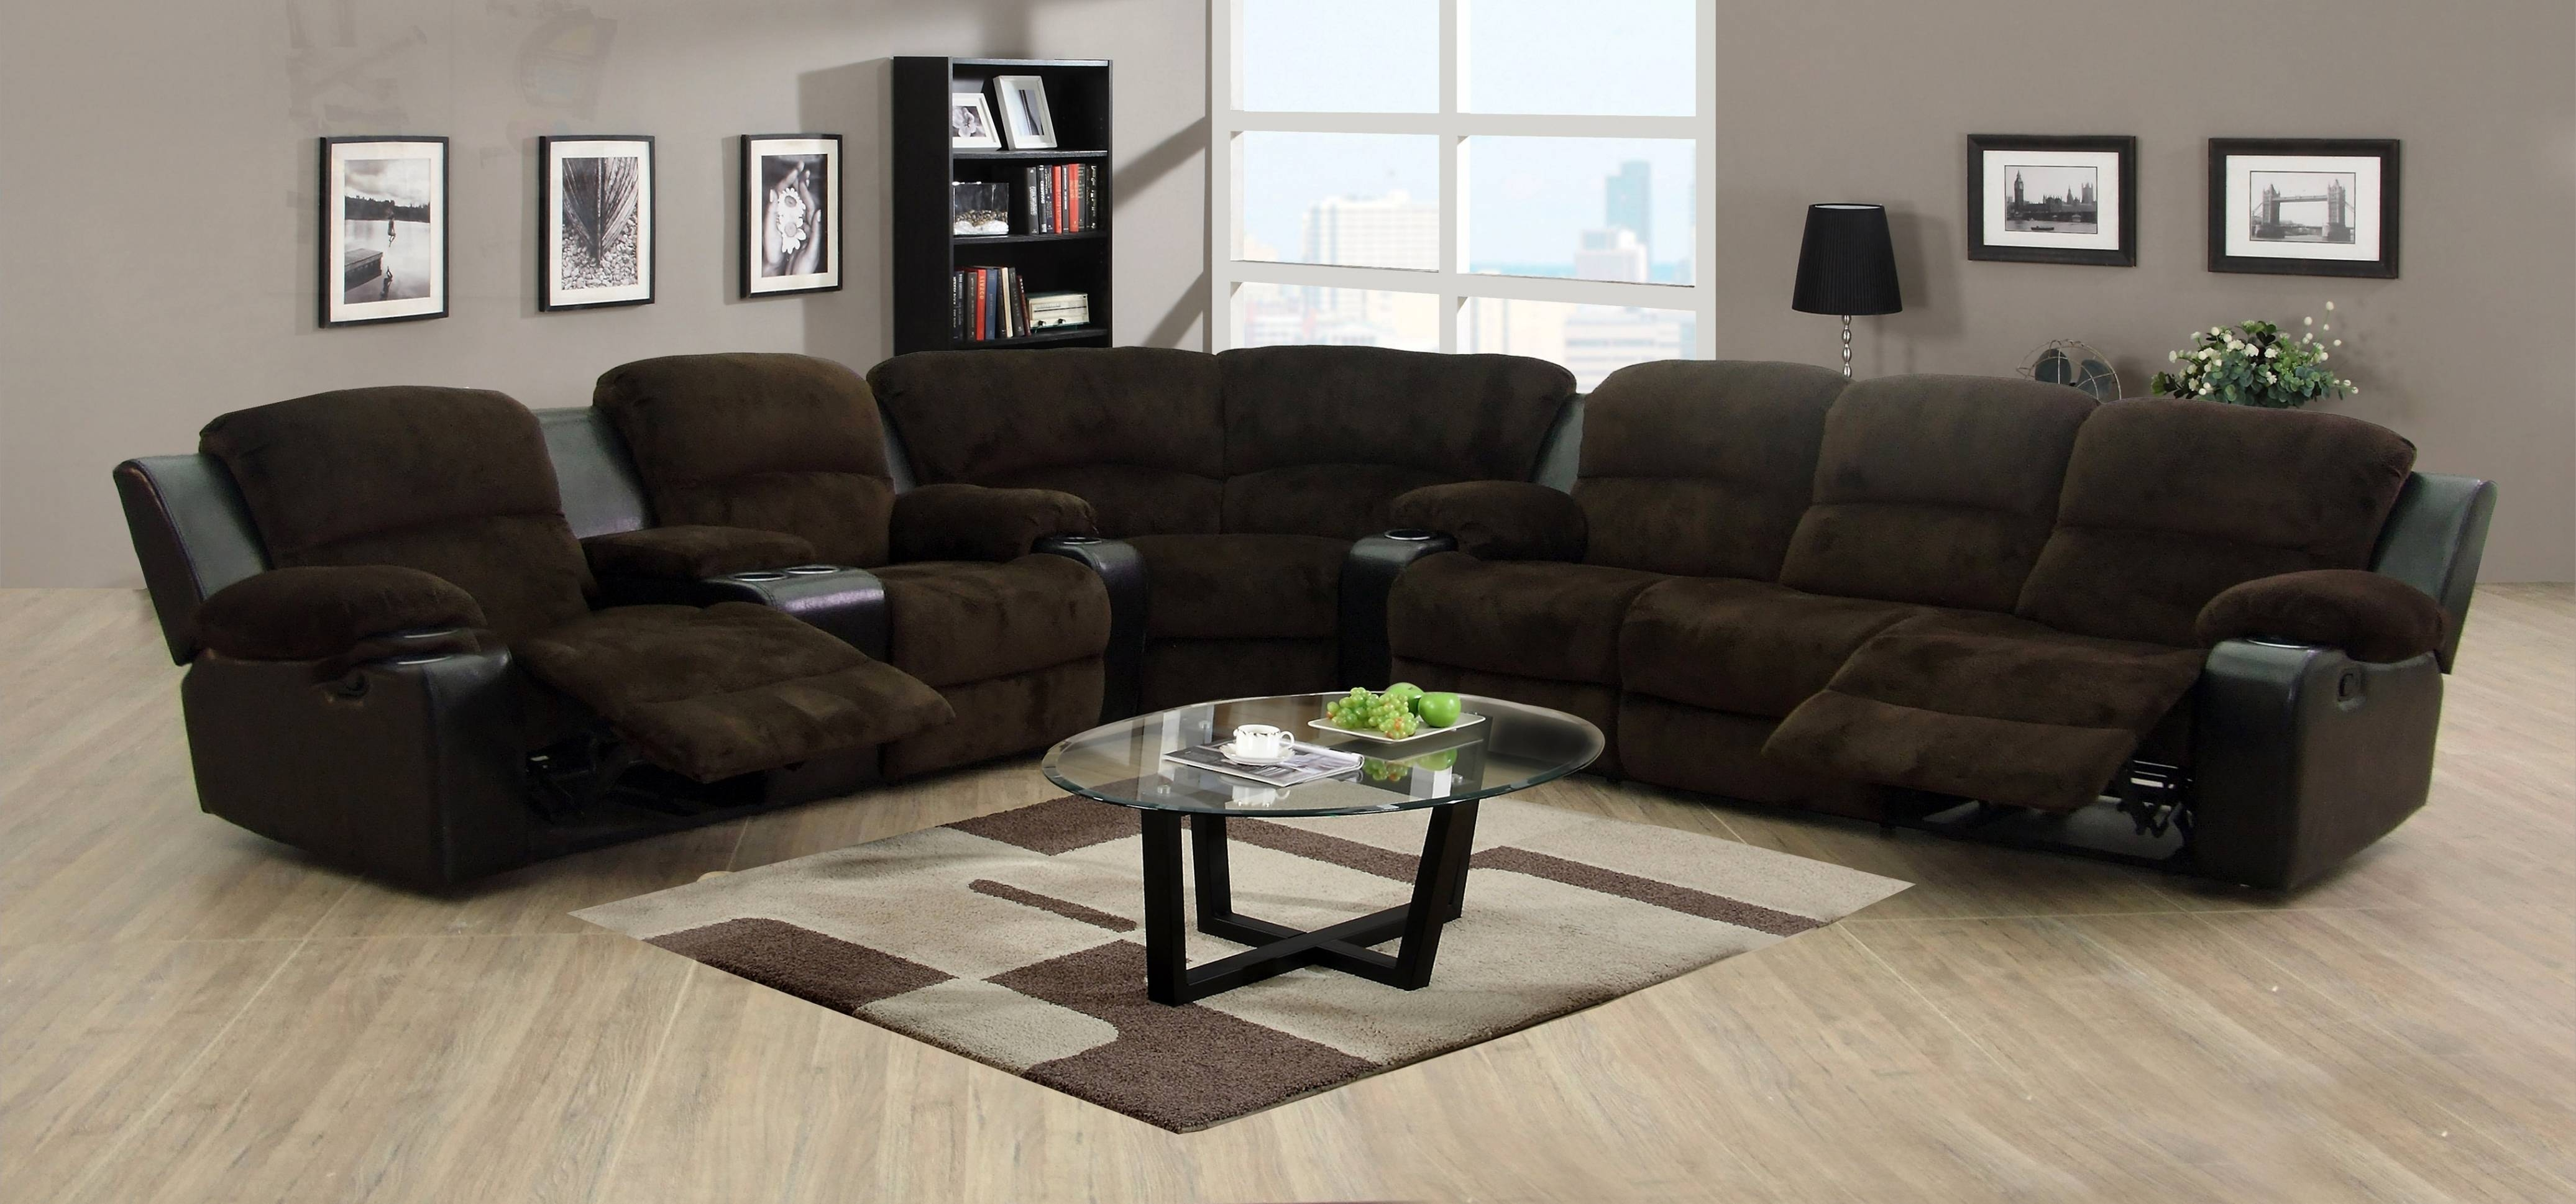 Fresh Sectional Sofas With Recliners And Cup Holders | Sofa Ideas in Sofas With Cup Holders (Image 3 of 15)